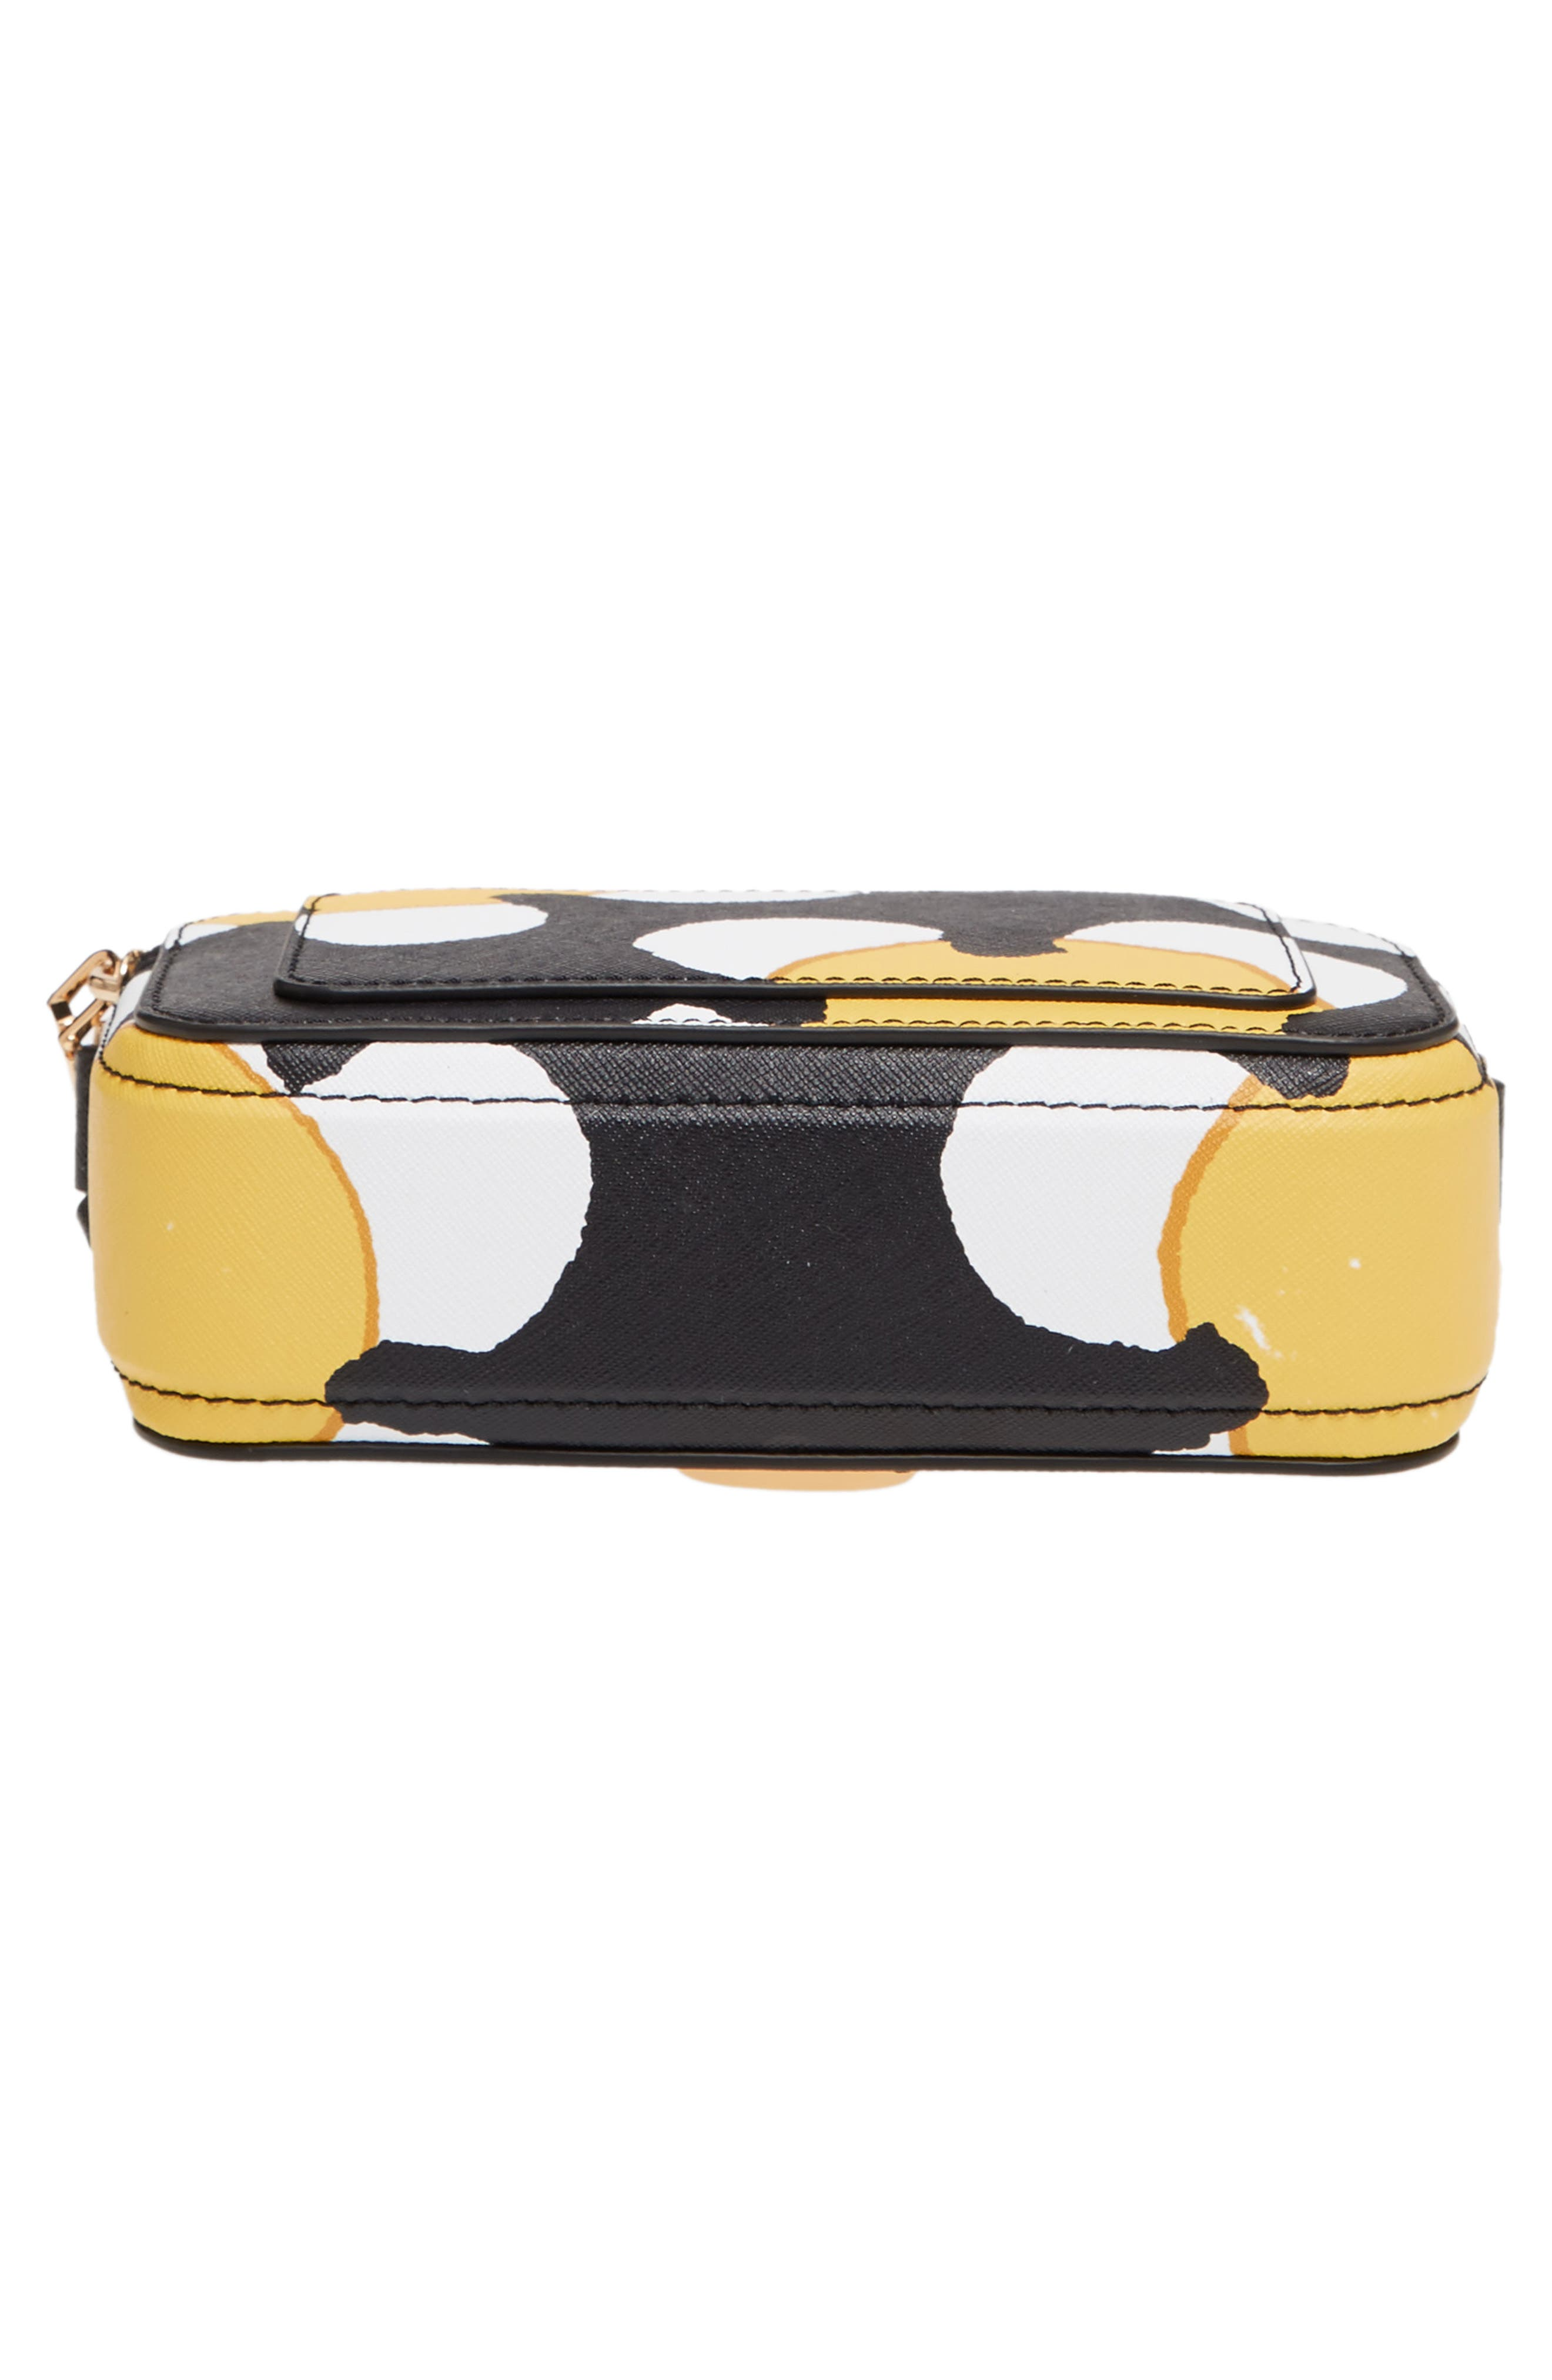 Snapshot Daisy Print Leather Crossbody Bag,                             Alternate thumbnail 6, color,                             Yellow Multi